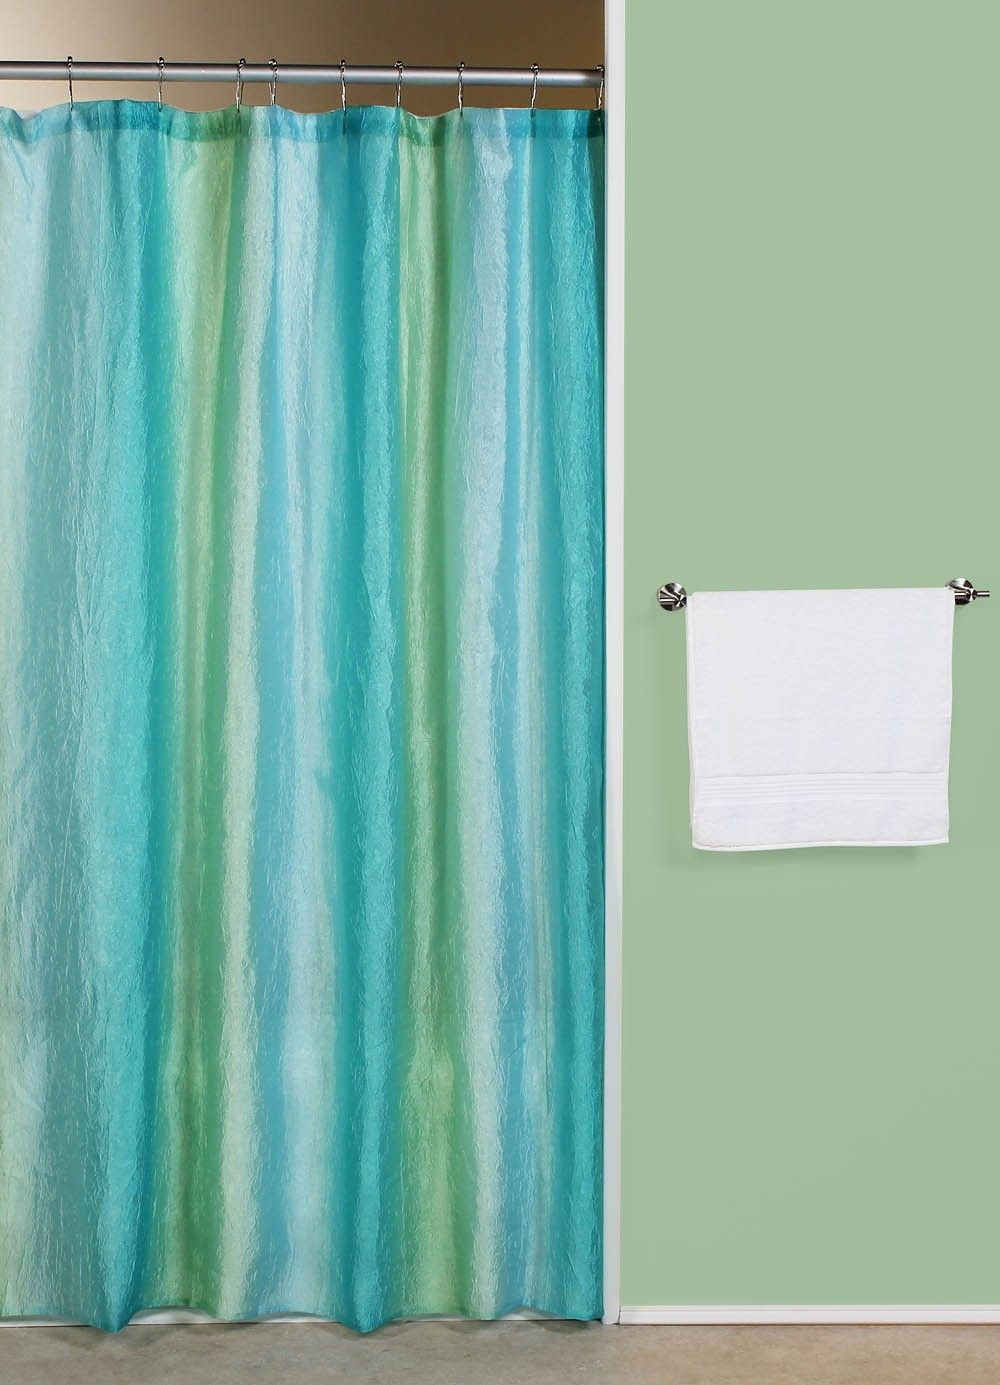 Blue curtains for bathroom - Wonderful Bathroom Design With Blue Shower Curtain And Ombre Blue Green Fabric Shower Curtain